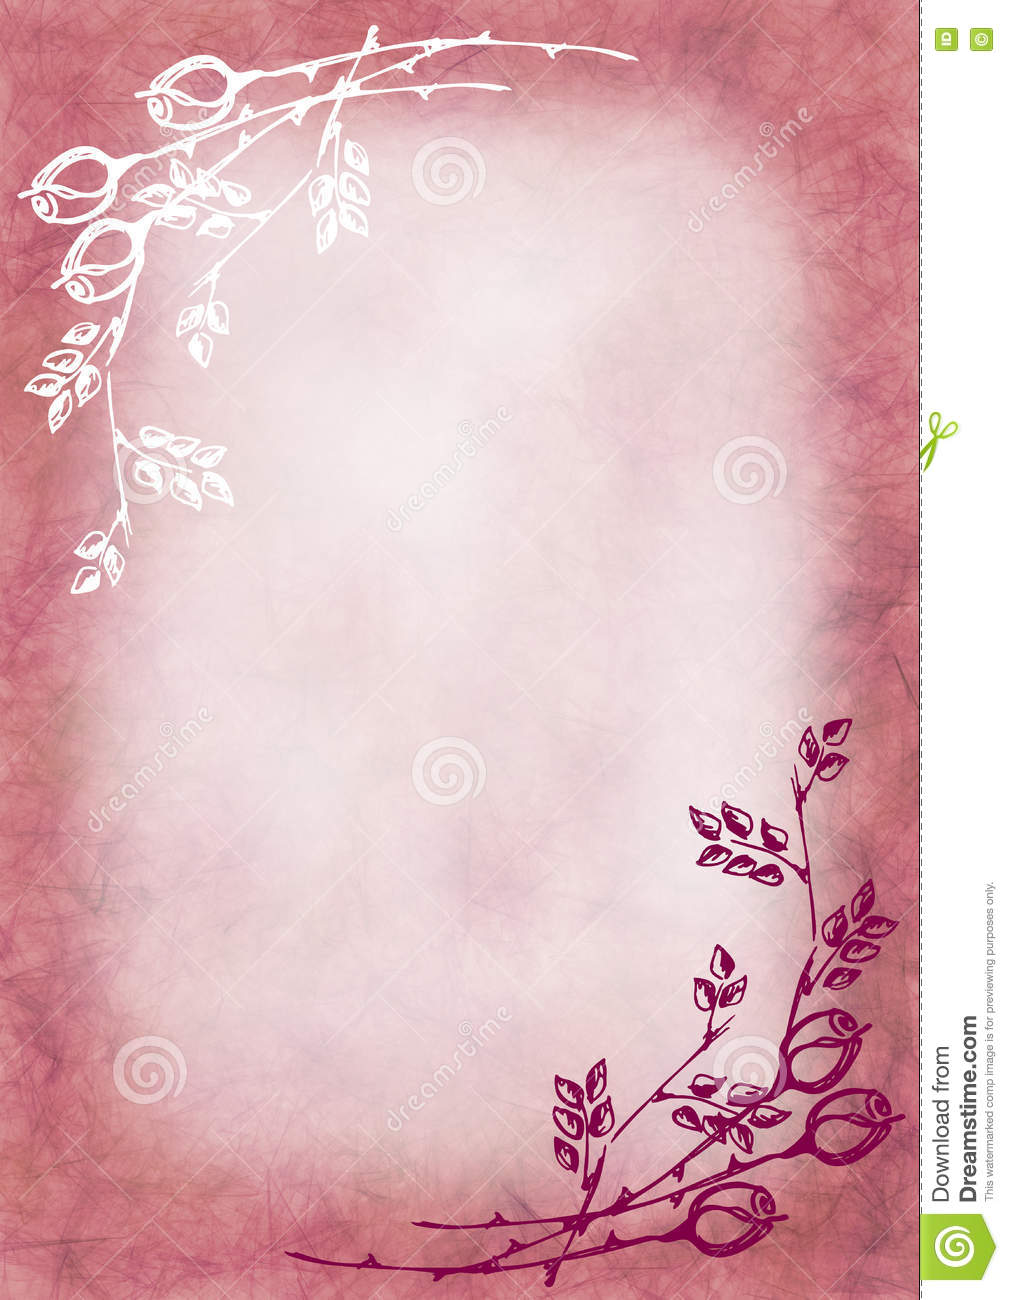 hand drawn textured floral background in pink colors with rose and